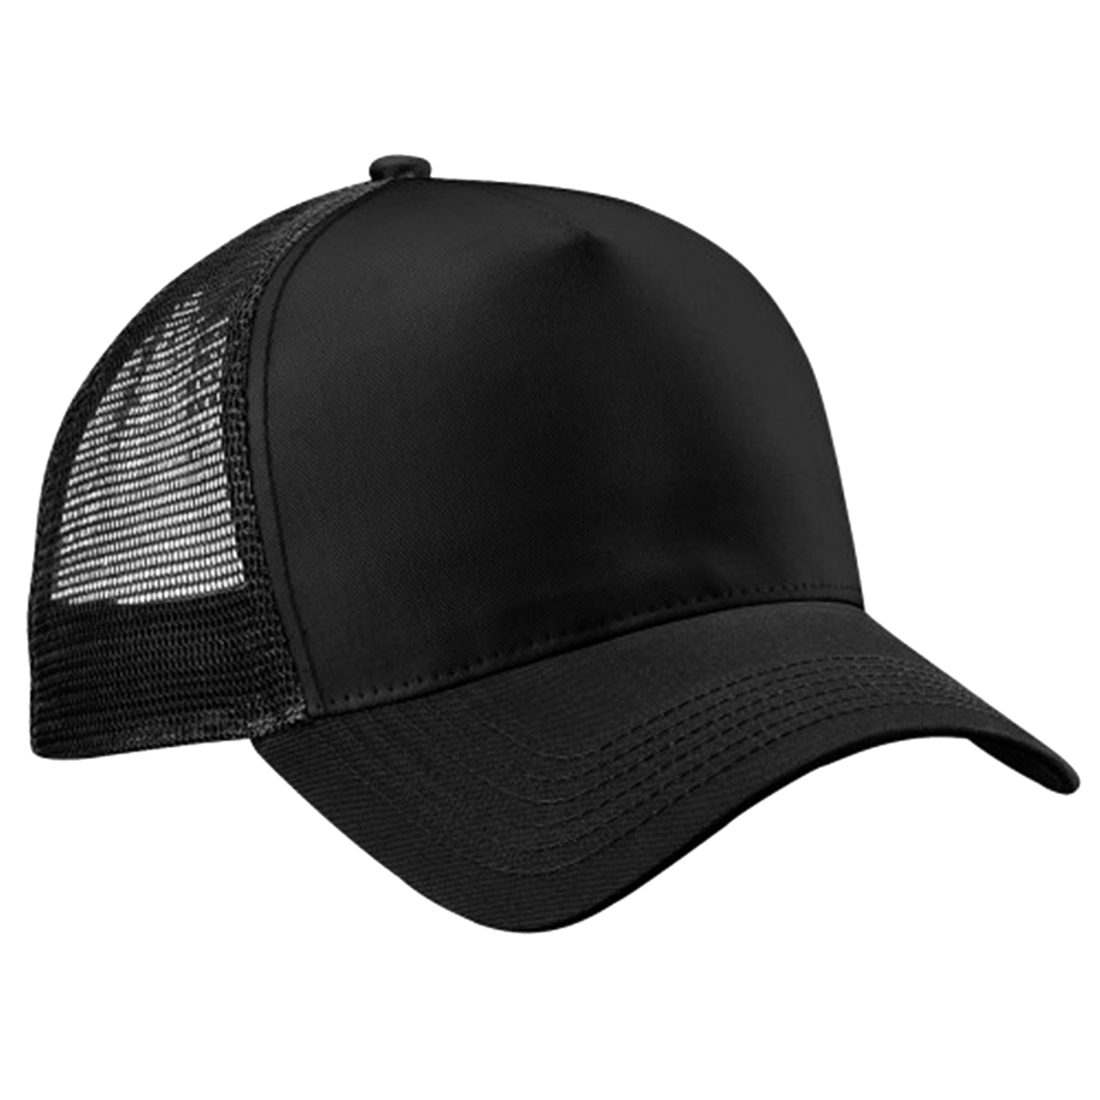 Mens Half Mesh Adjustable Trucker Cap Baseball Hat